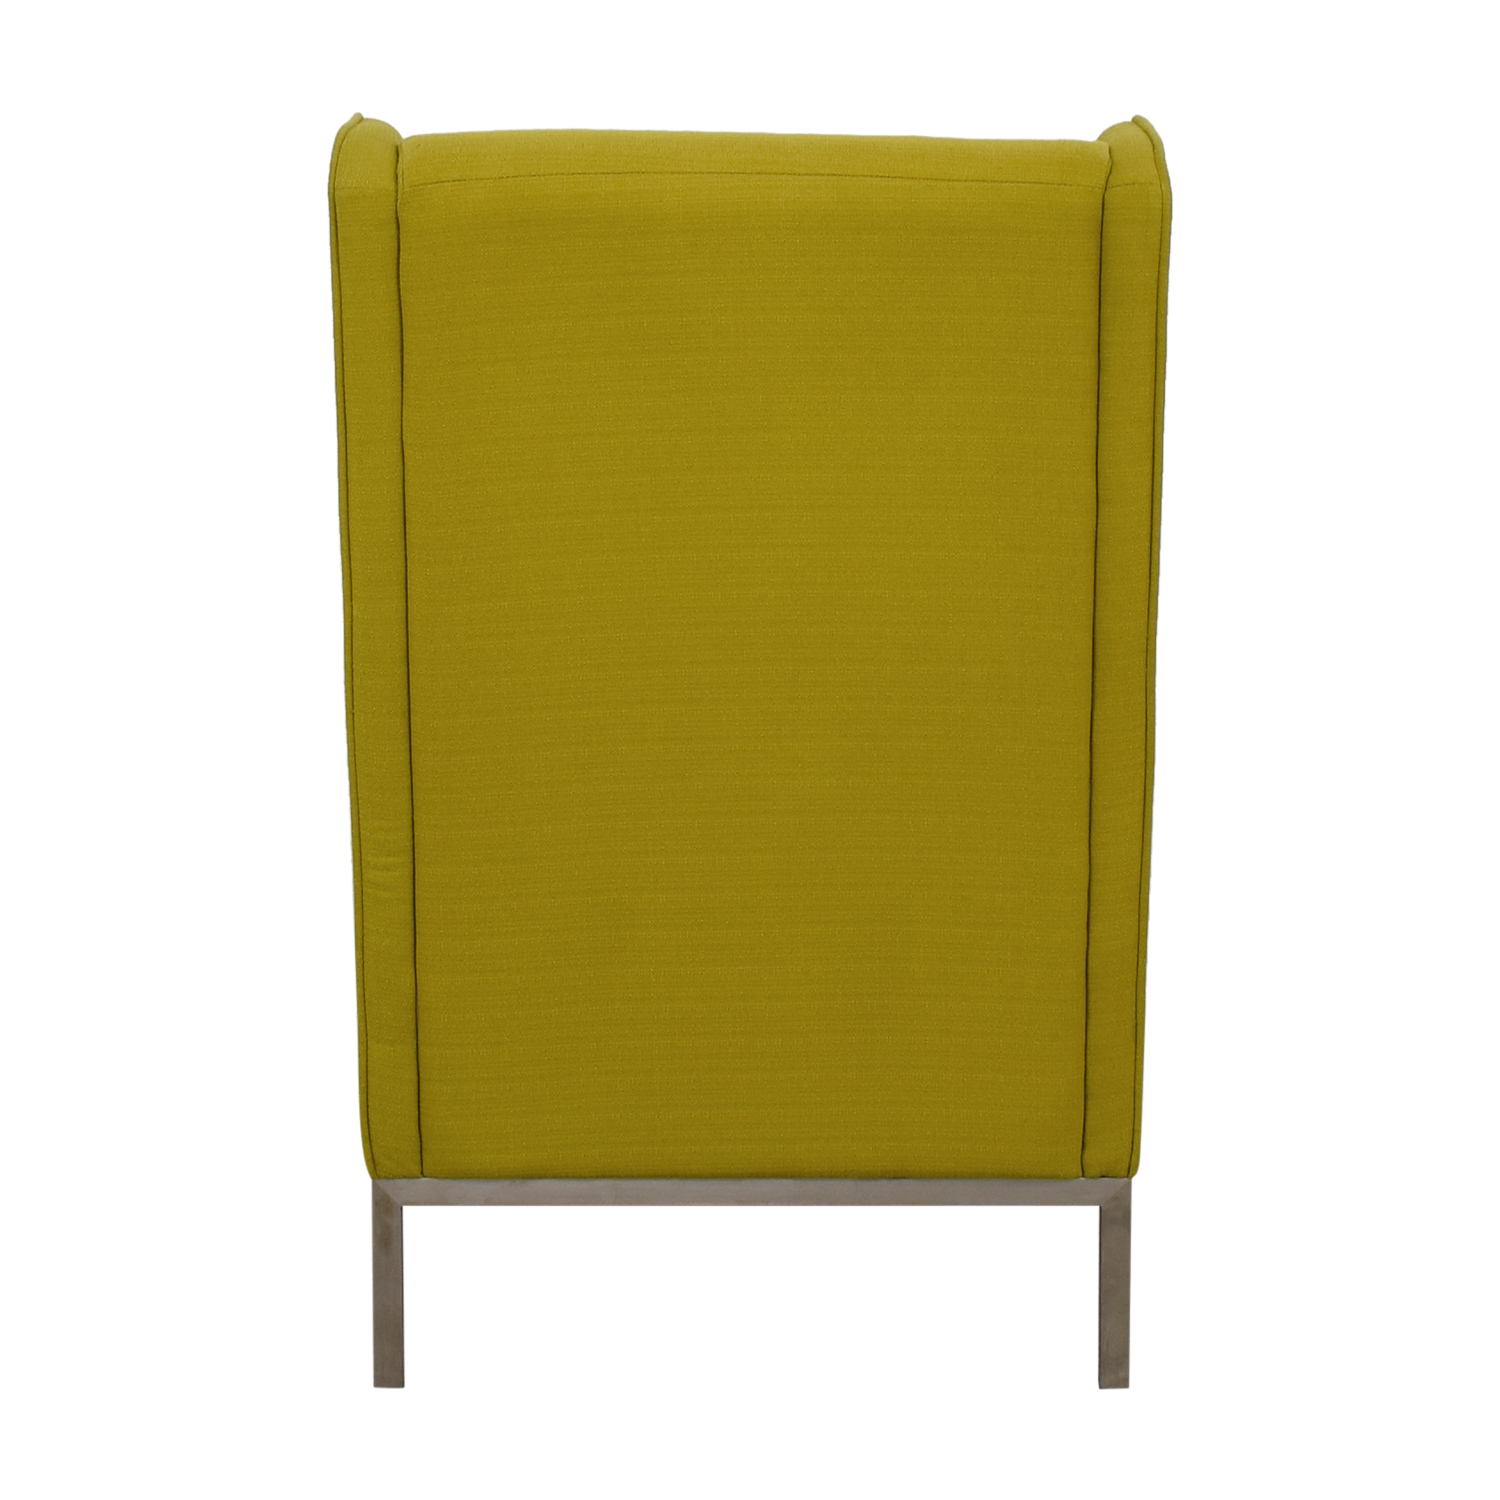 Crate & Barrel Crate & Barrel Neon Green Accent Chair dimensions